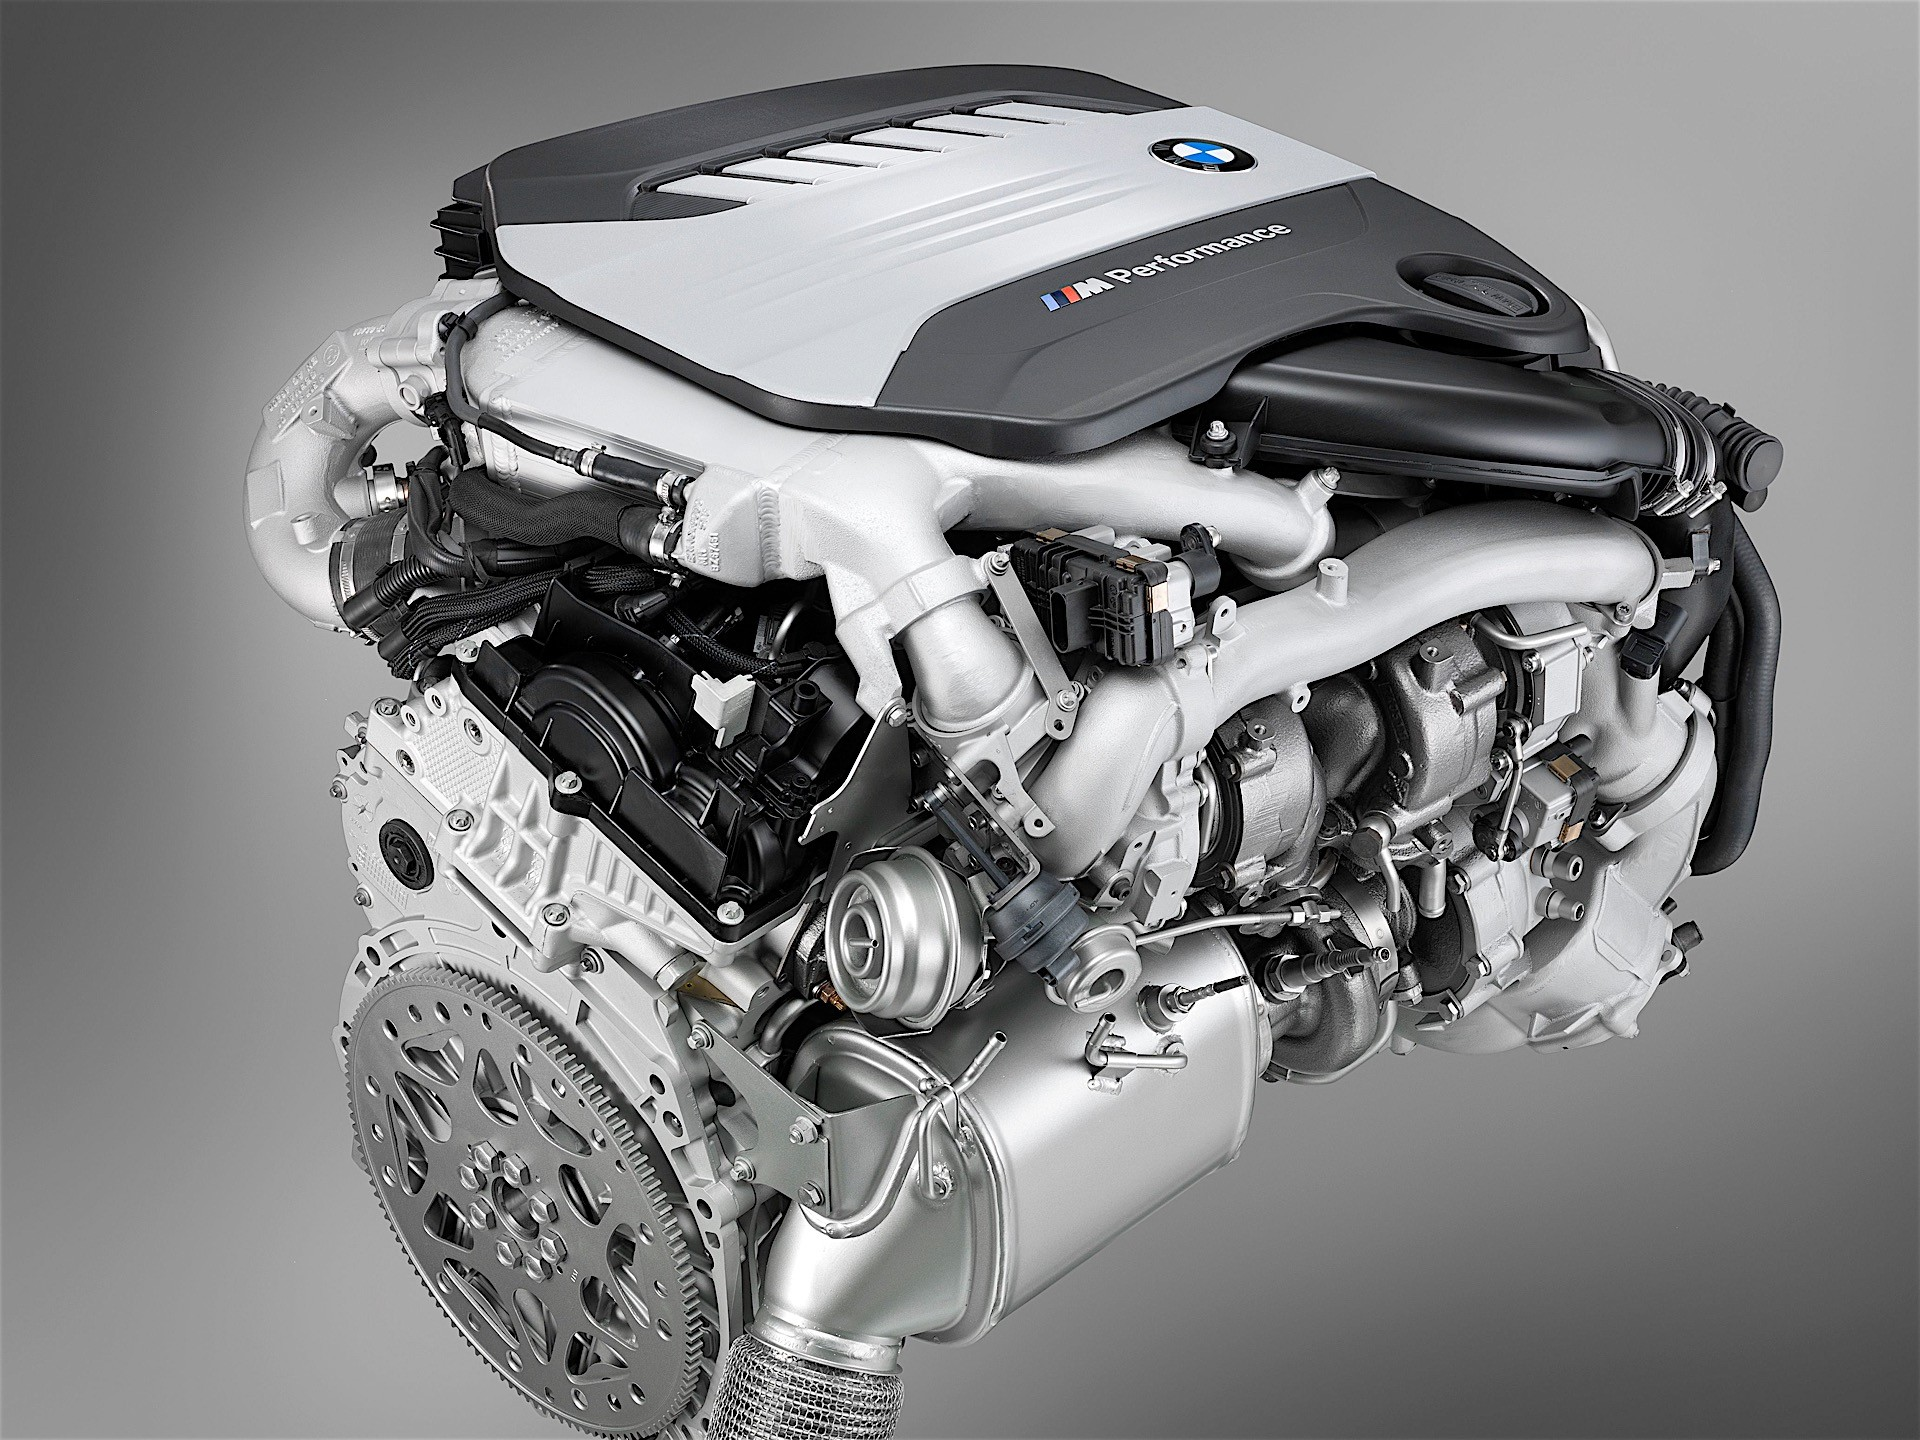 benz techarticles engines leaks extra mercedes diesel image fixing vacuum common engine large htm